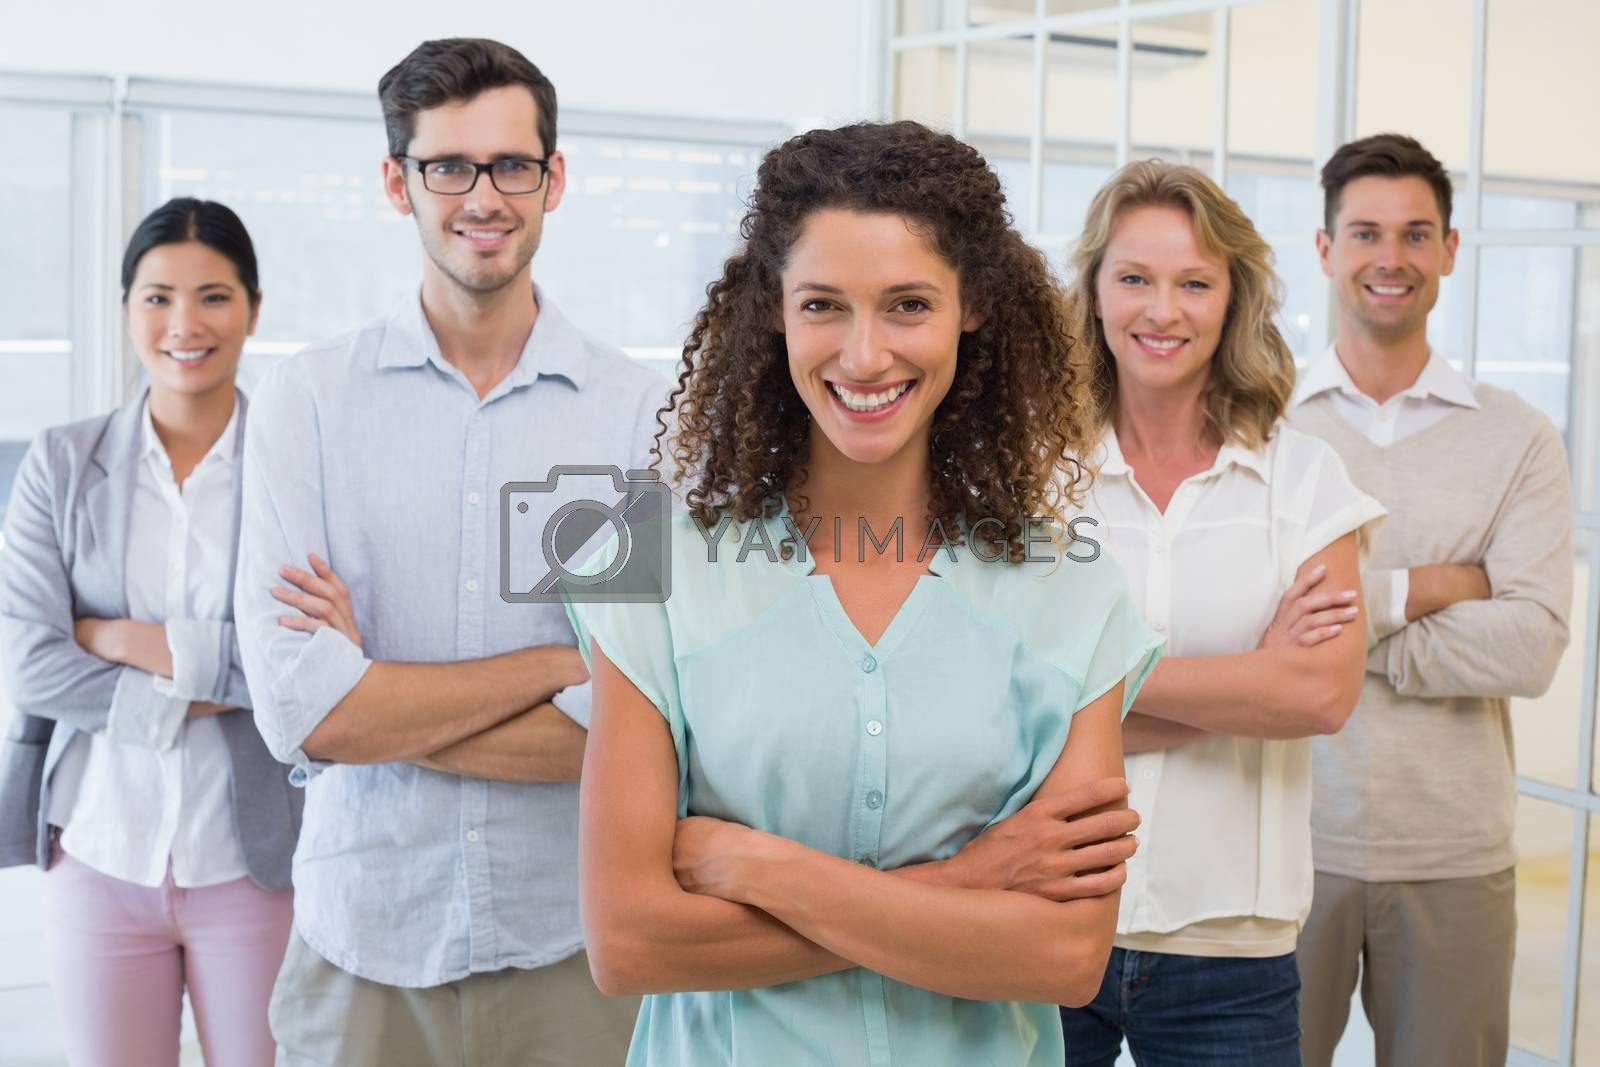 Royalty free image of Casual business team smiling at camera with arms crossed by Wavebreakmedia